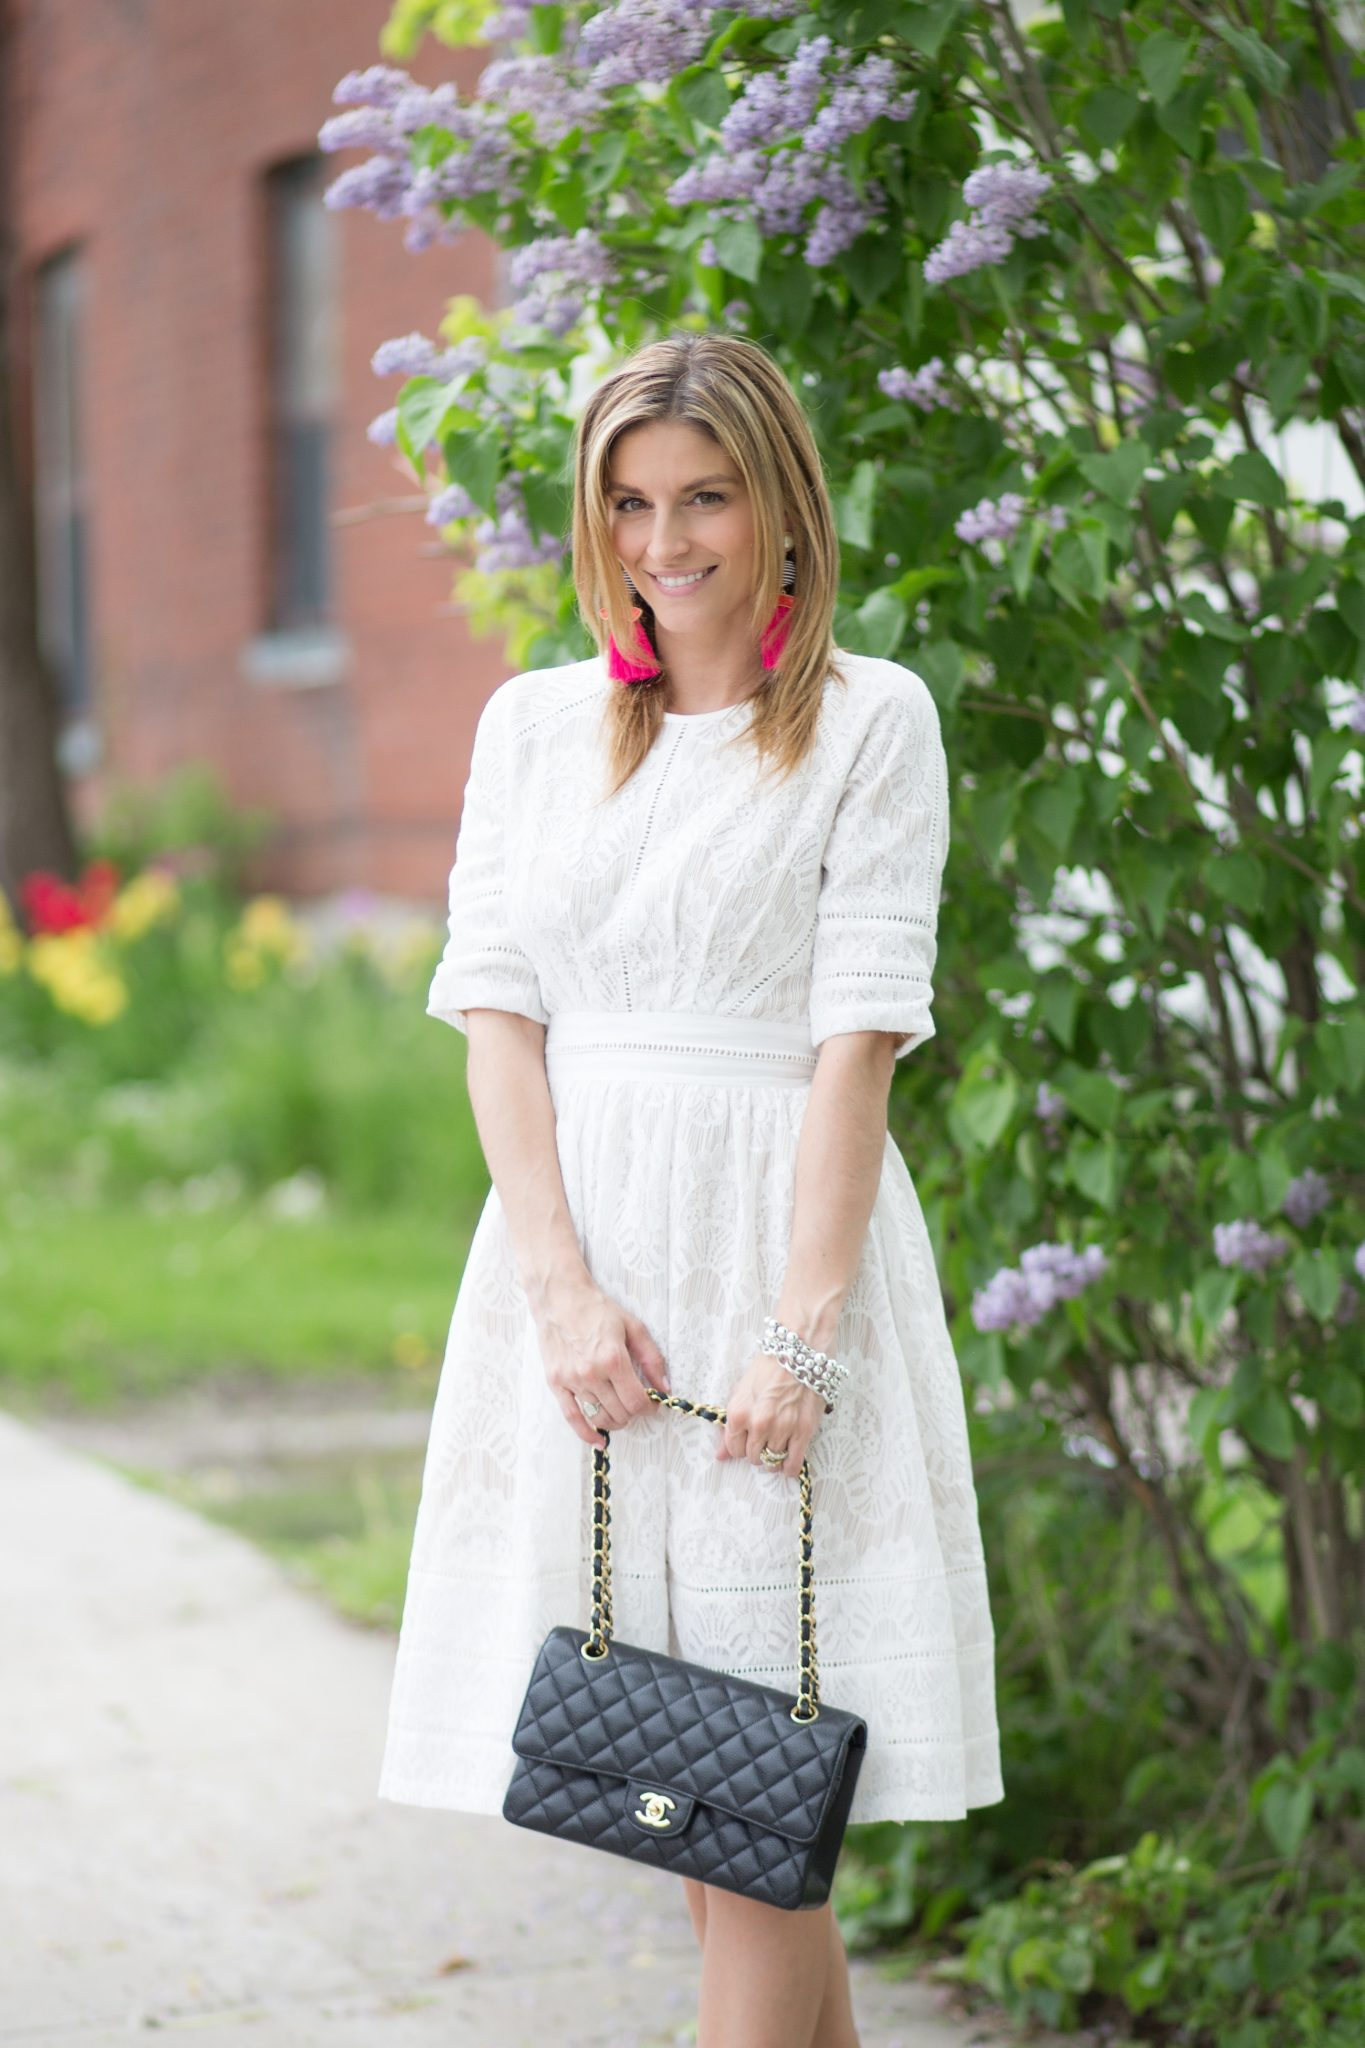 White lace dress from Zaful, suede lace up pumps, Chanel medium flap bag, pink tassel earrings